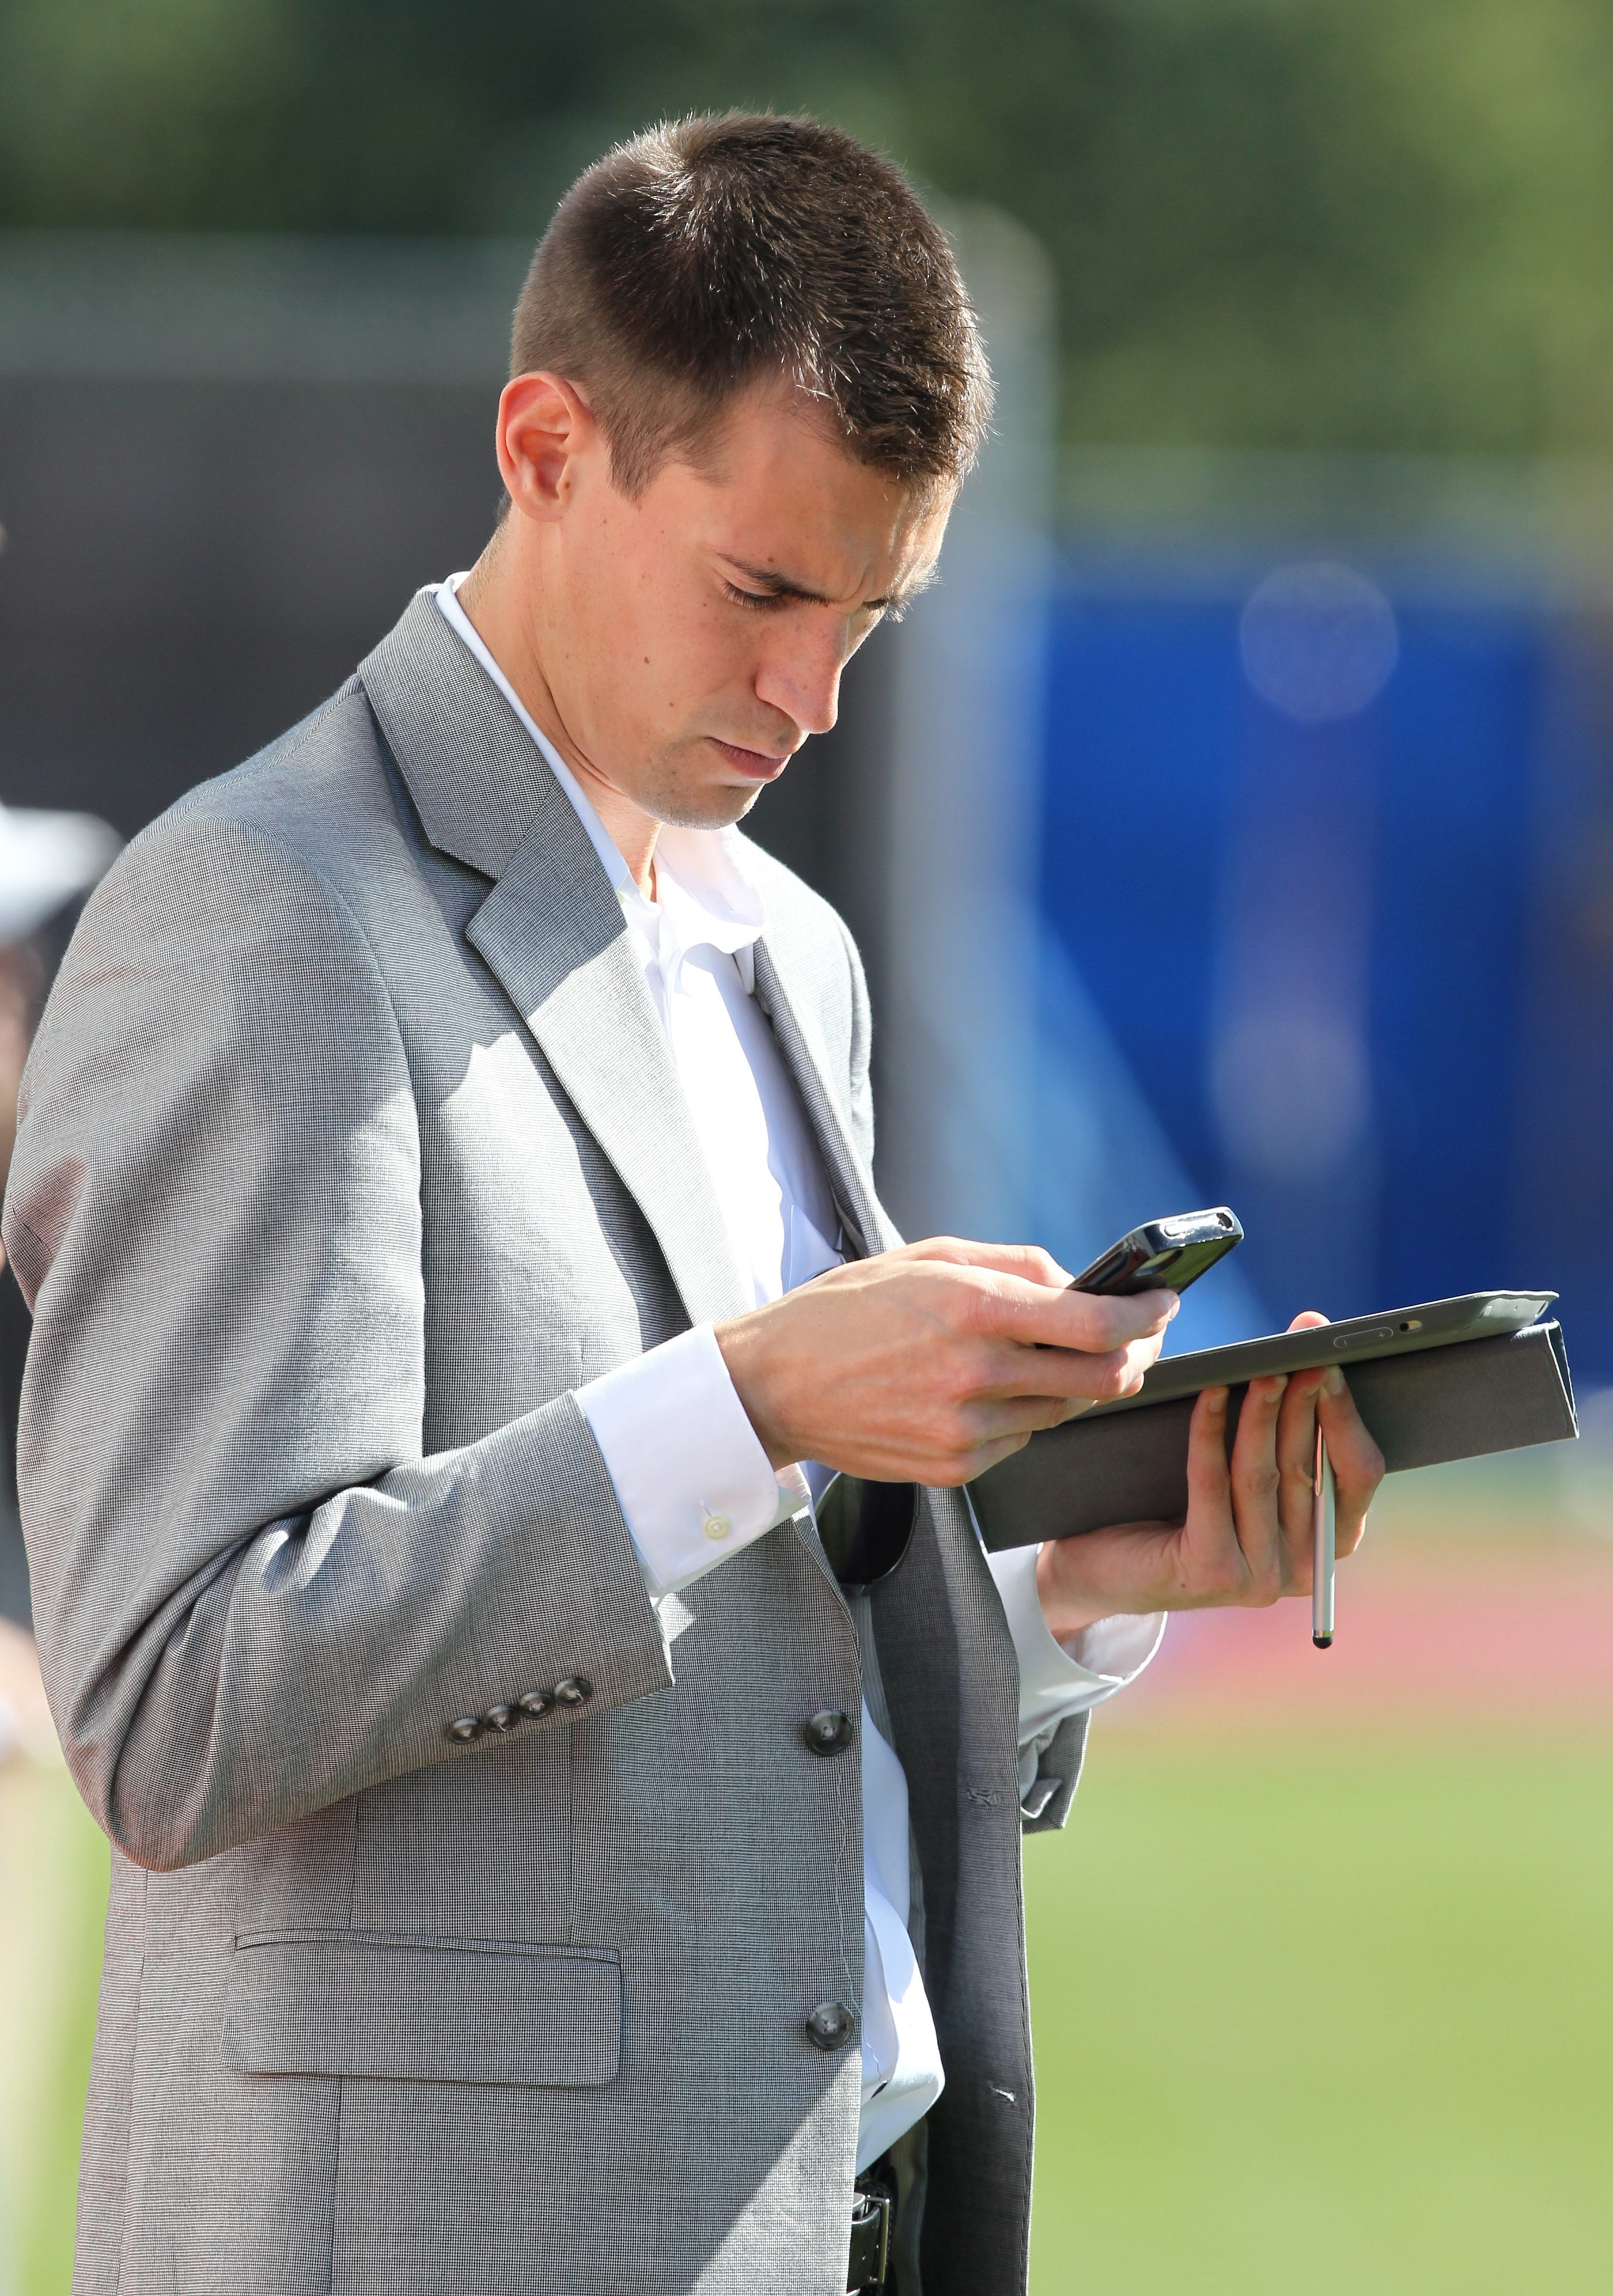 WGR's Joe Buscaglia checks his phone and notes while covering the Bills from the sideline during practice Wednesday at the team's practice field in Orchard Park.